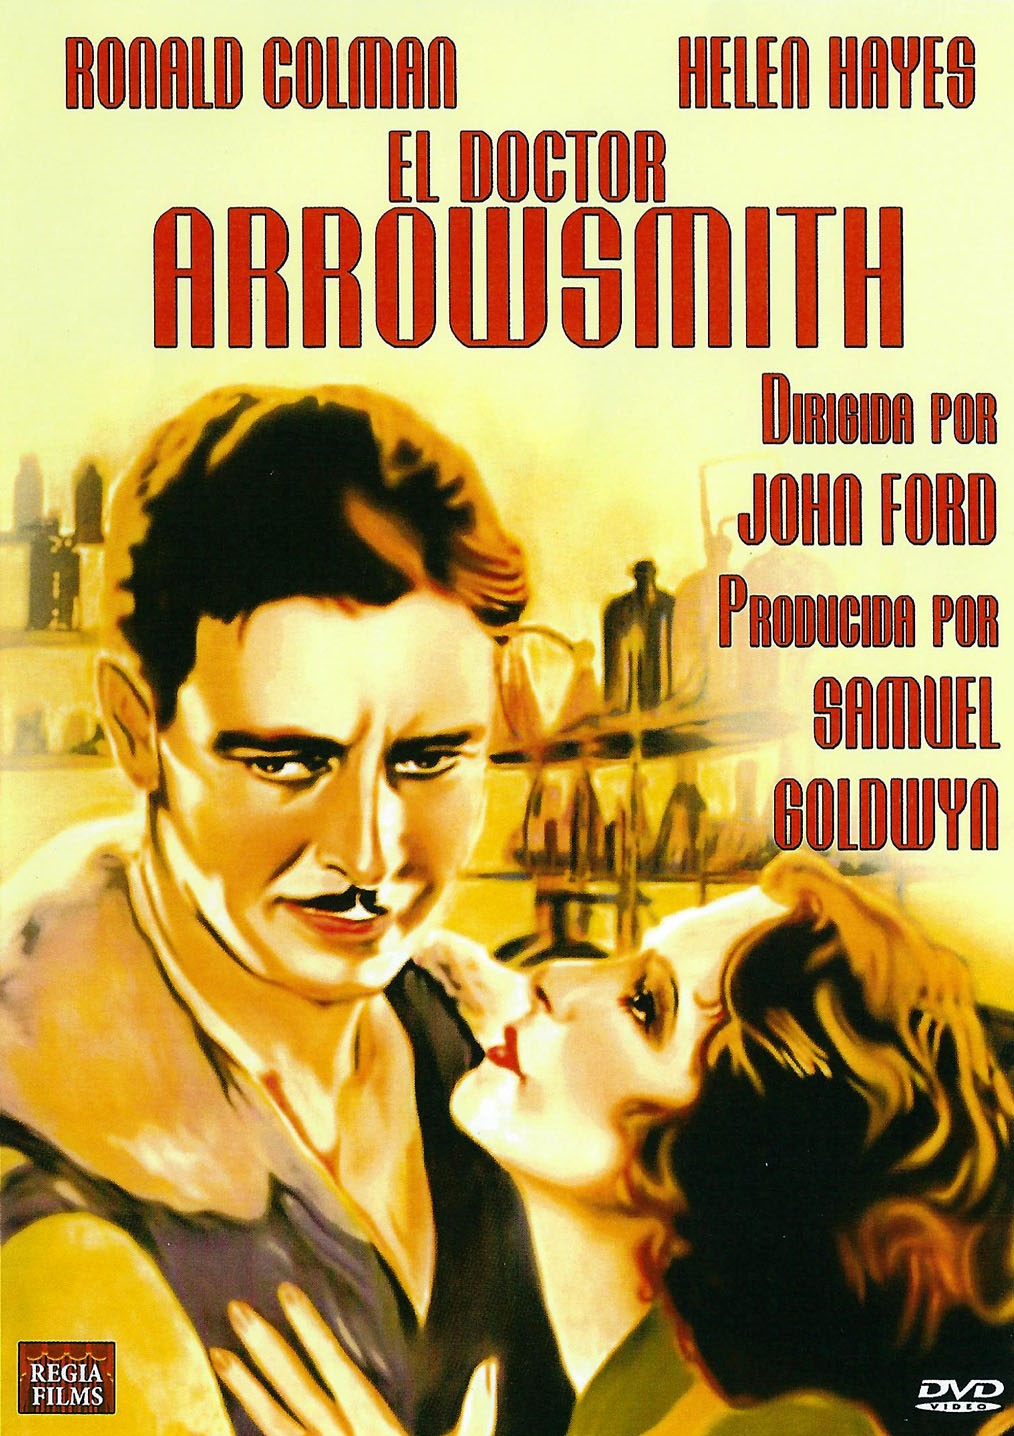 El doctor Arrowsmith